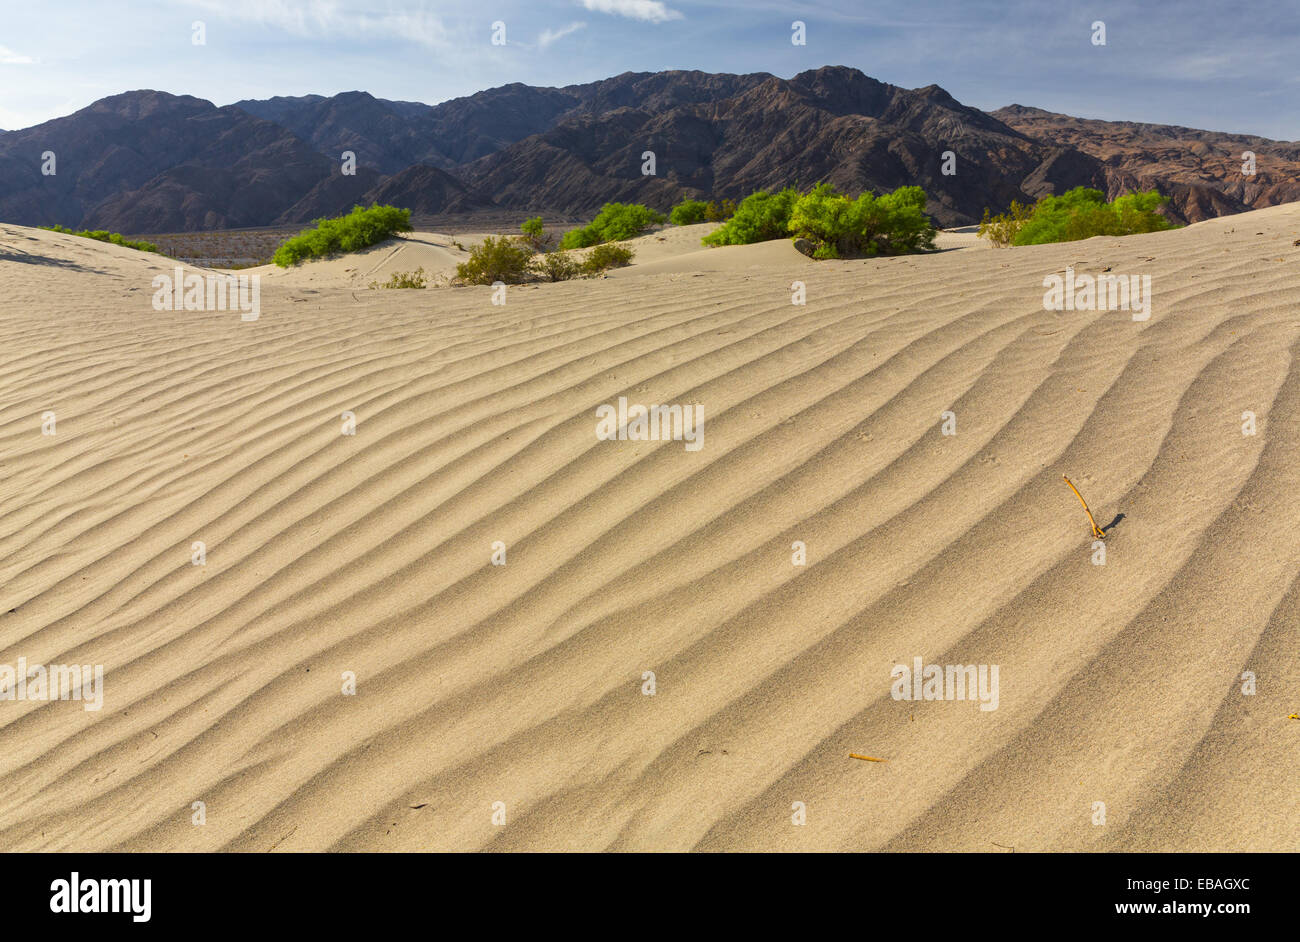 Mesquite Flat Sand Dunes Death Valley National Park California USA America. - Stock Image